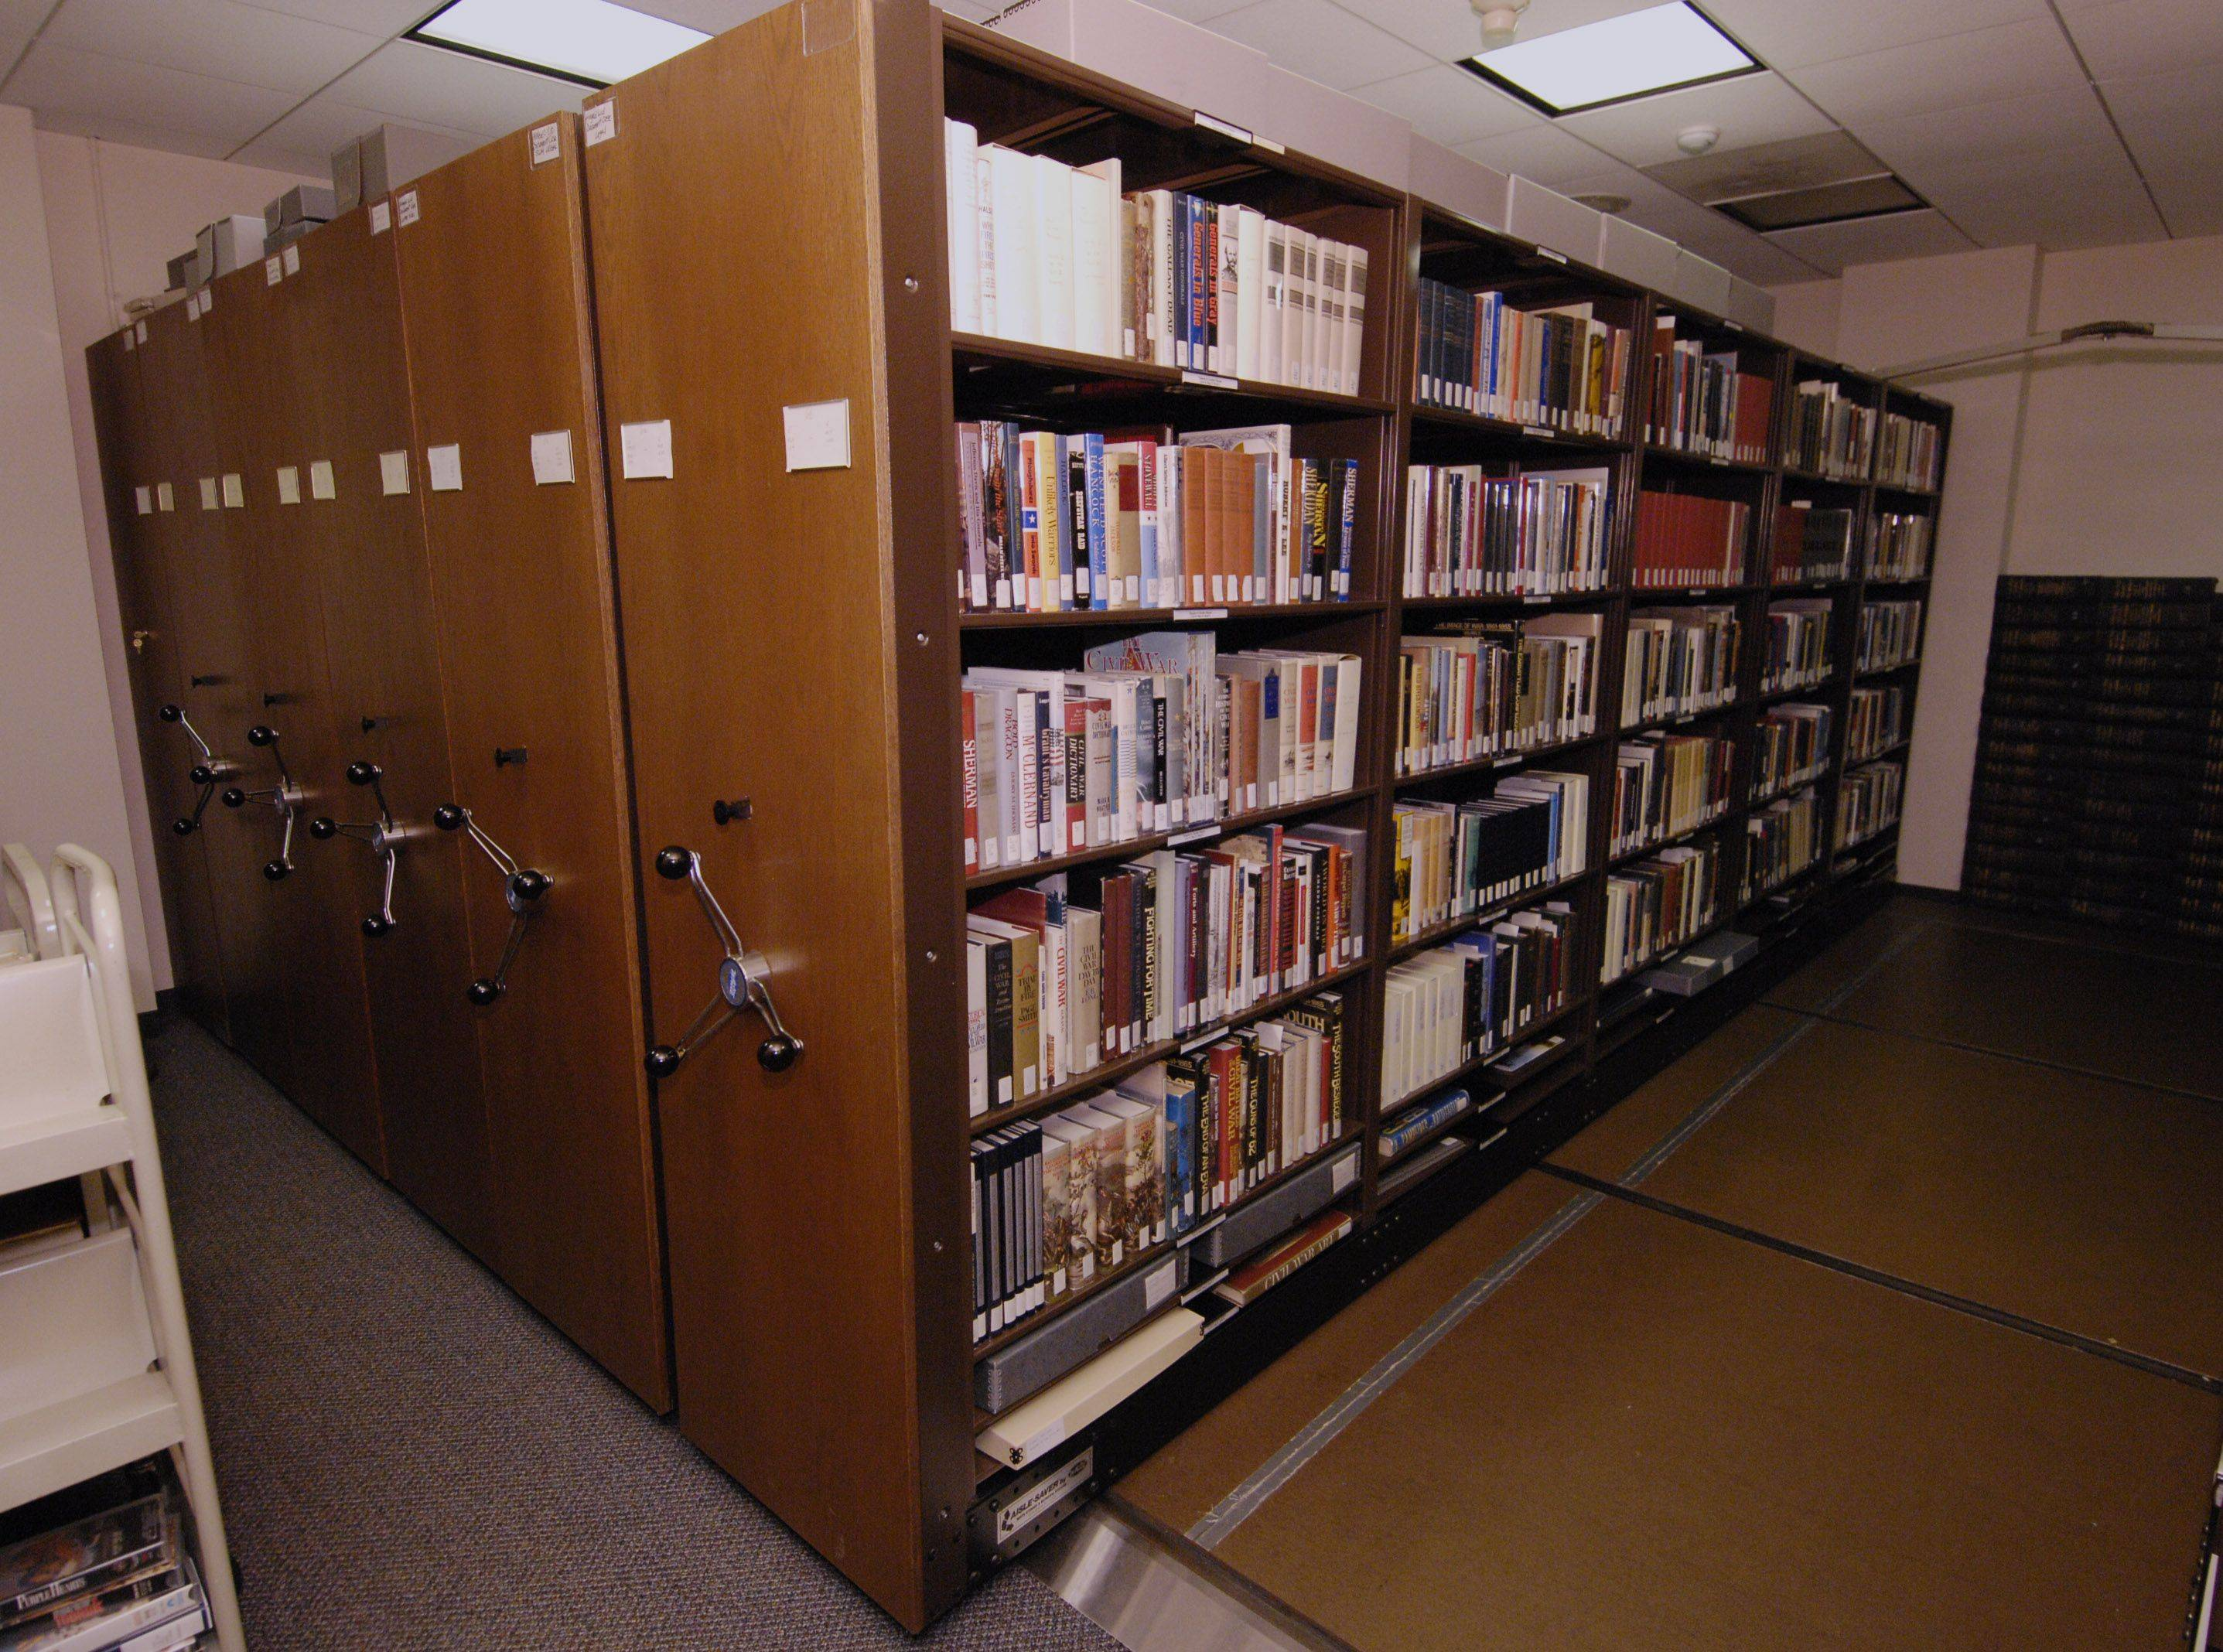 These movable book shelves house military books of all kinds and are made available electronically to libraries around the country. The Colonel Robert R. McCormick Research Center is located in the 1st Division Museum at Cantigny Park in Wheaton.